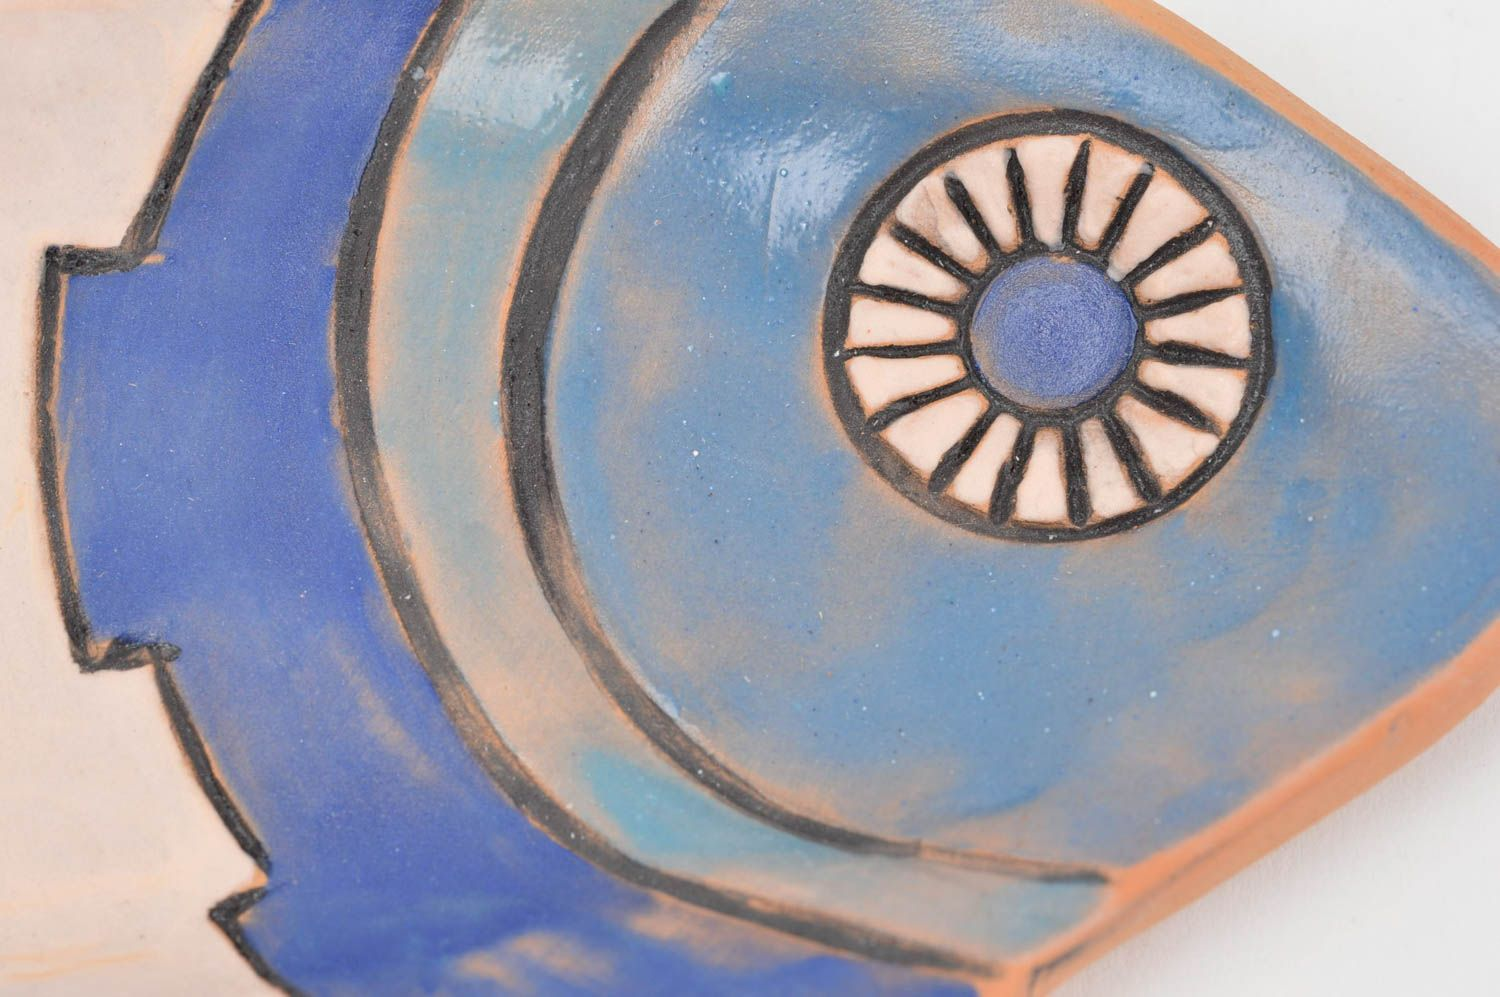 decorative plates Handmade decorative wall plate ceramic plate for home decor designer plate - MADEheart.com